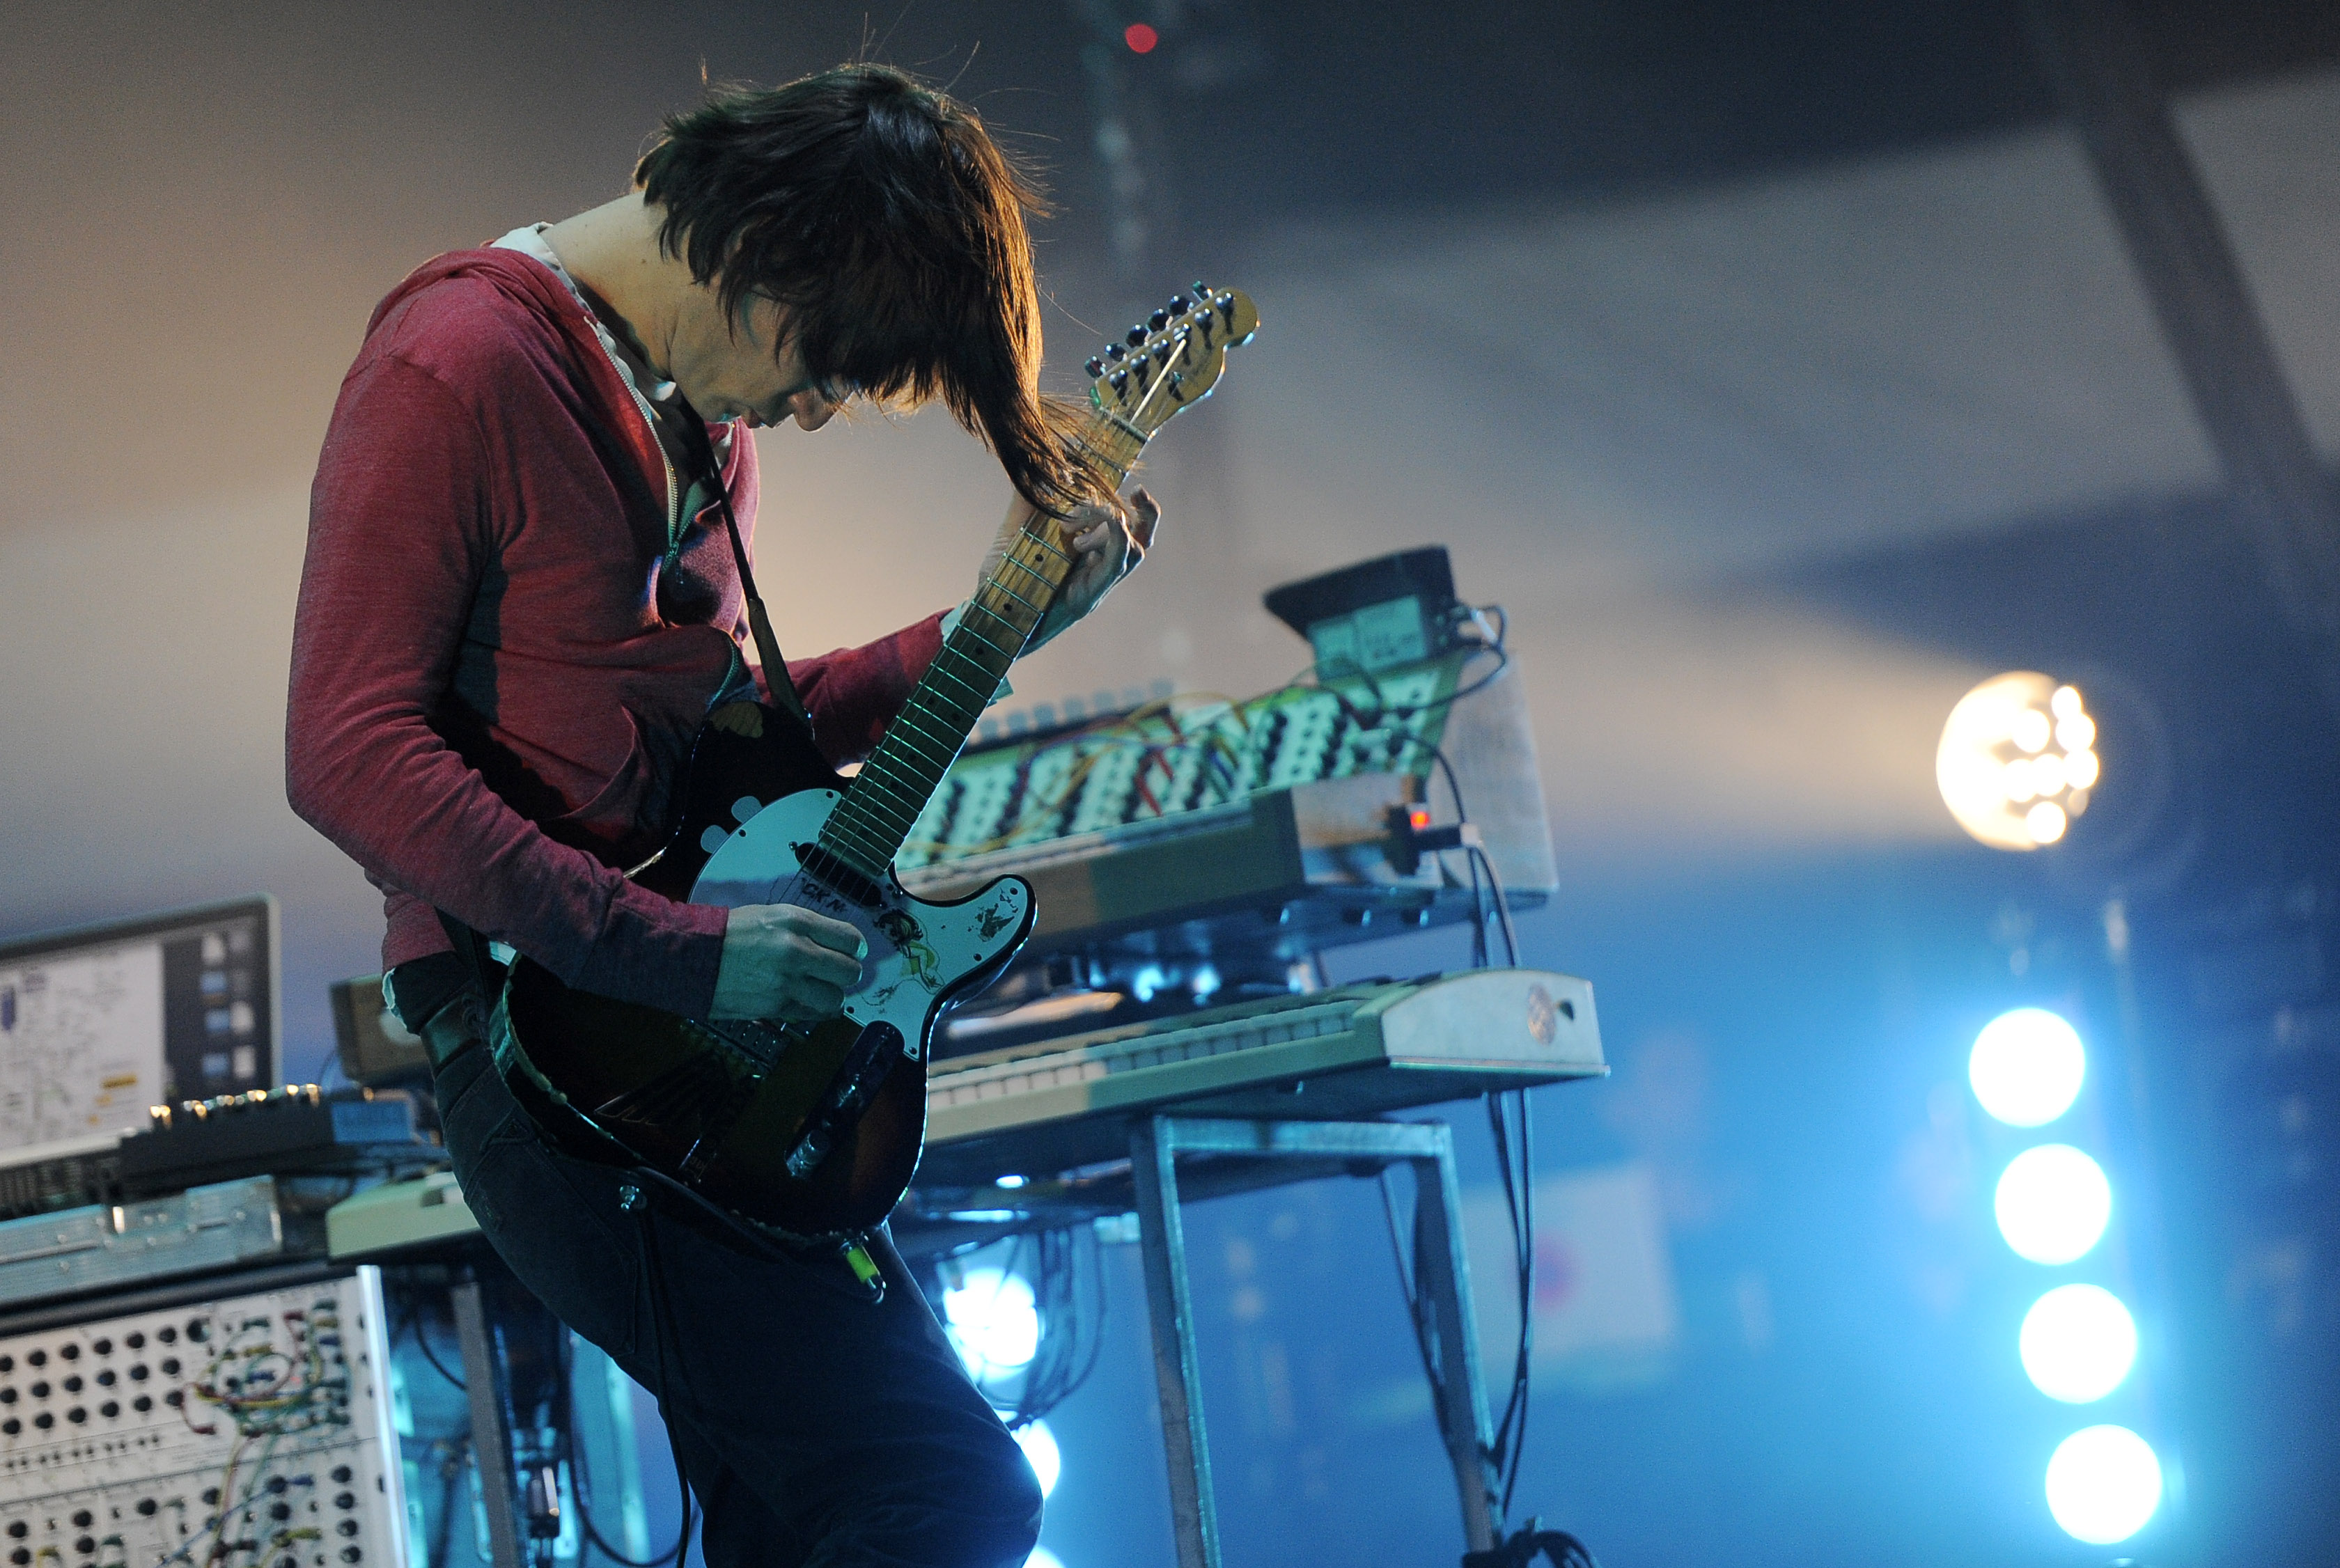 Photo: Radiohead's Jonny Greenwood